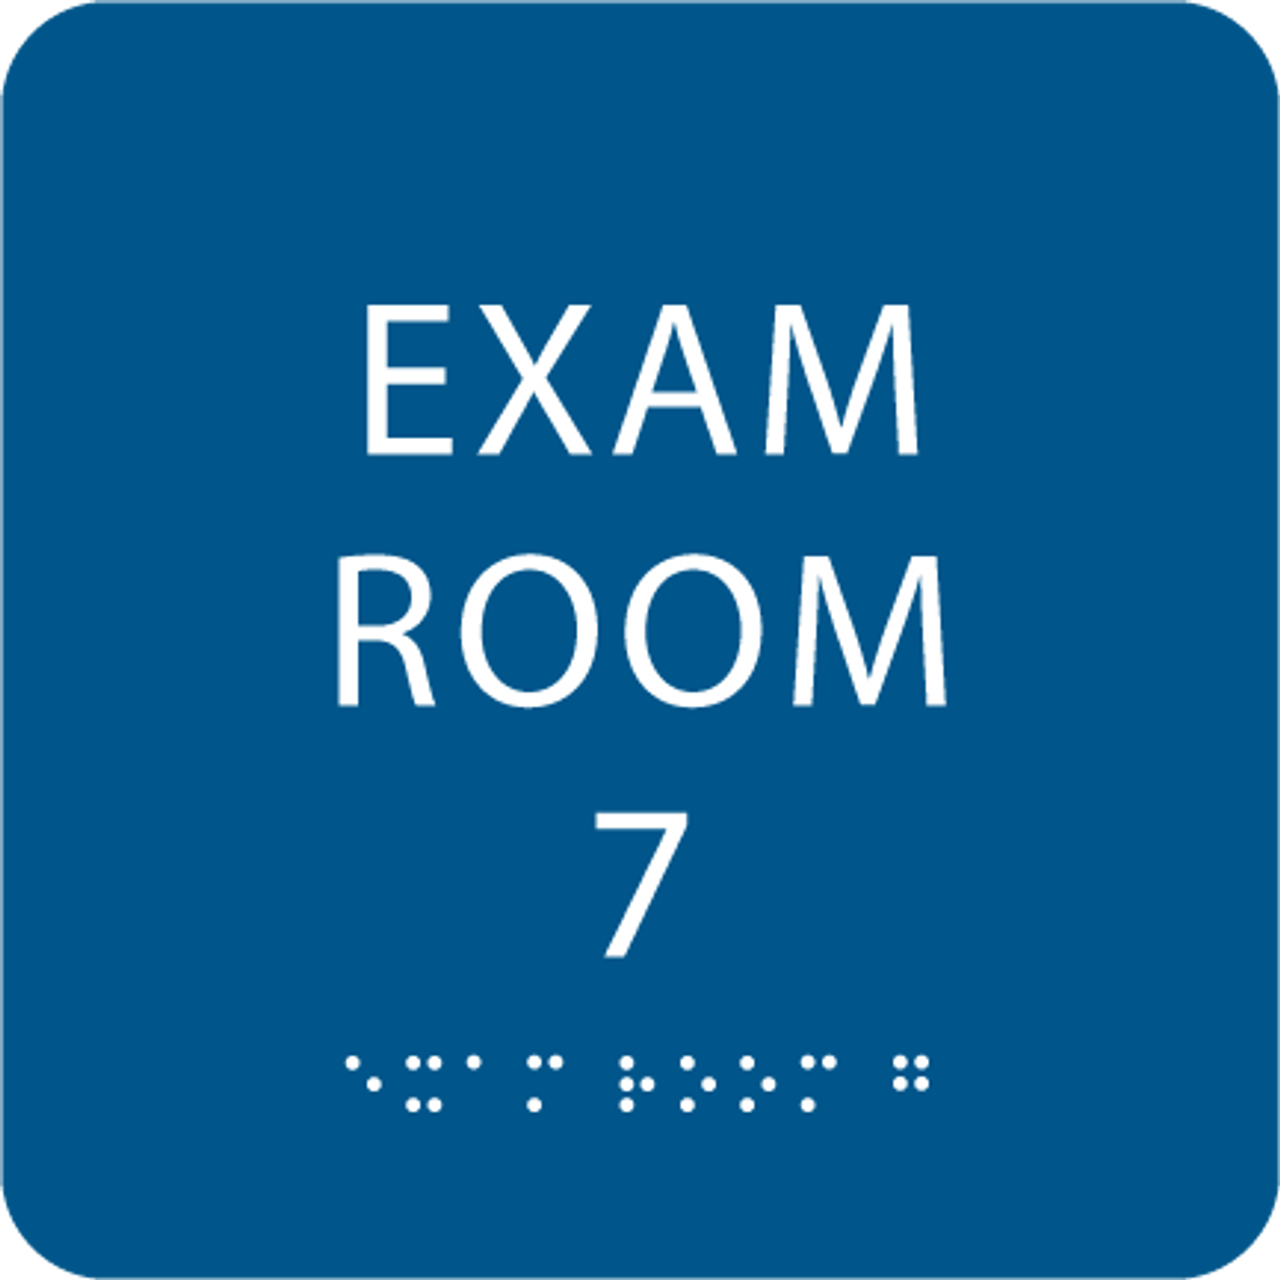 Blue Exam Room 7 Sign w/ ADA Braille